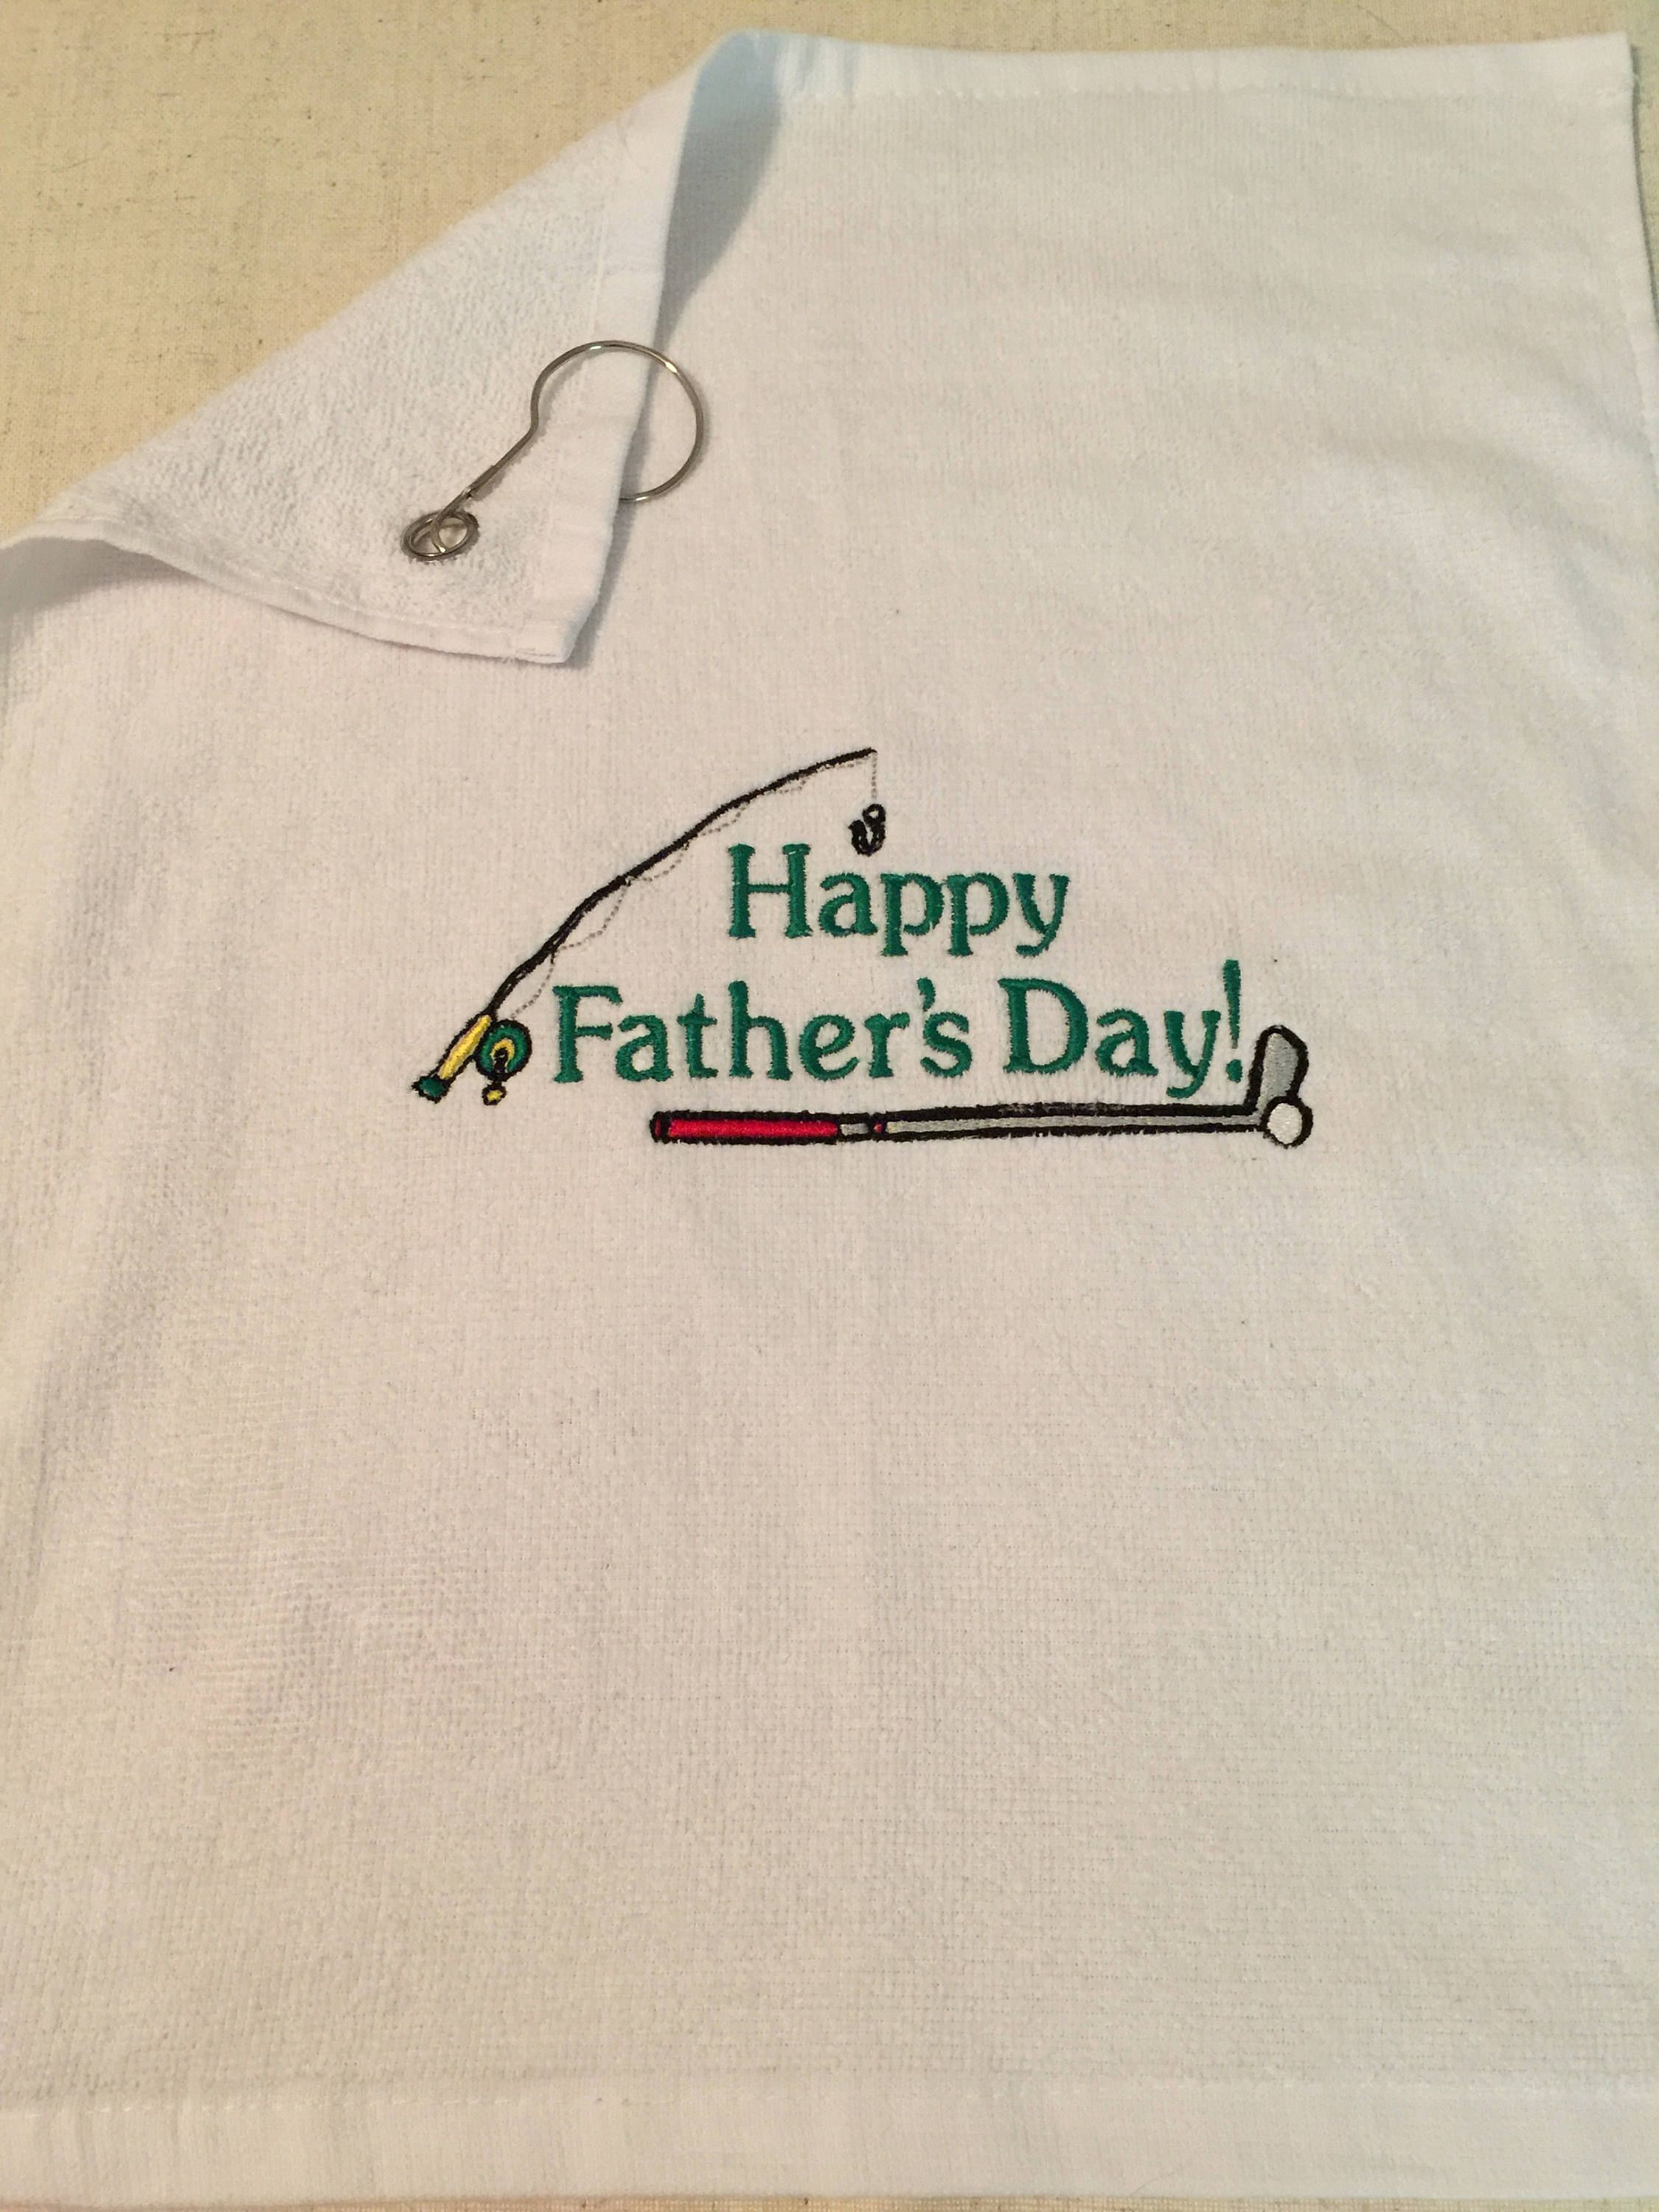 Custom Embroidered Happy Father's Day Towel with Grommet by